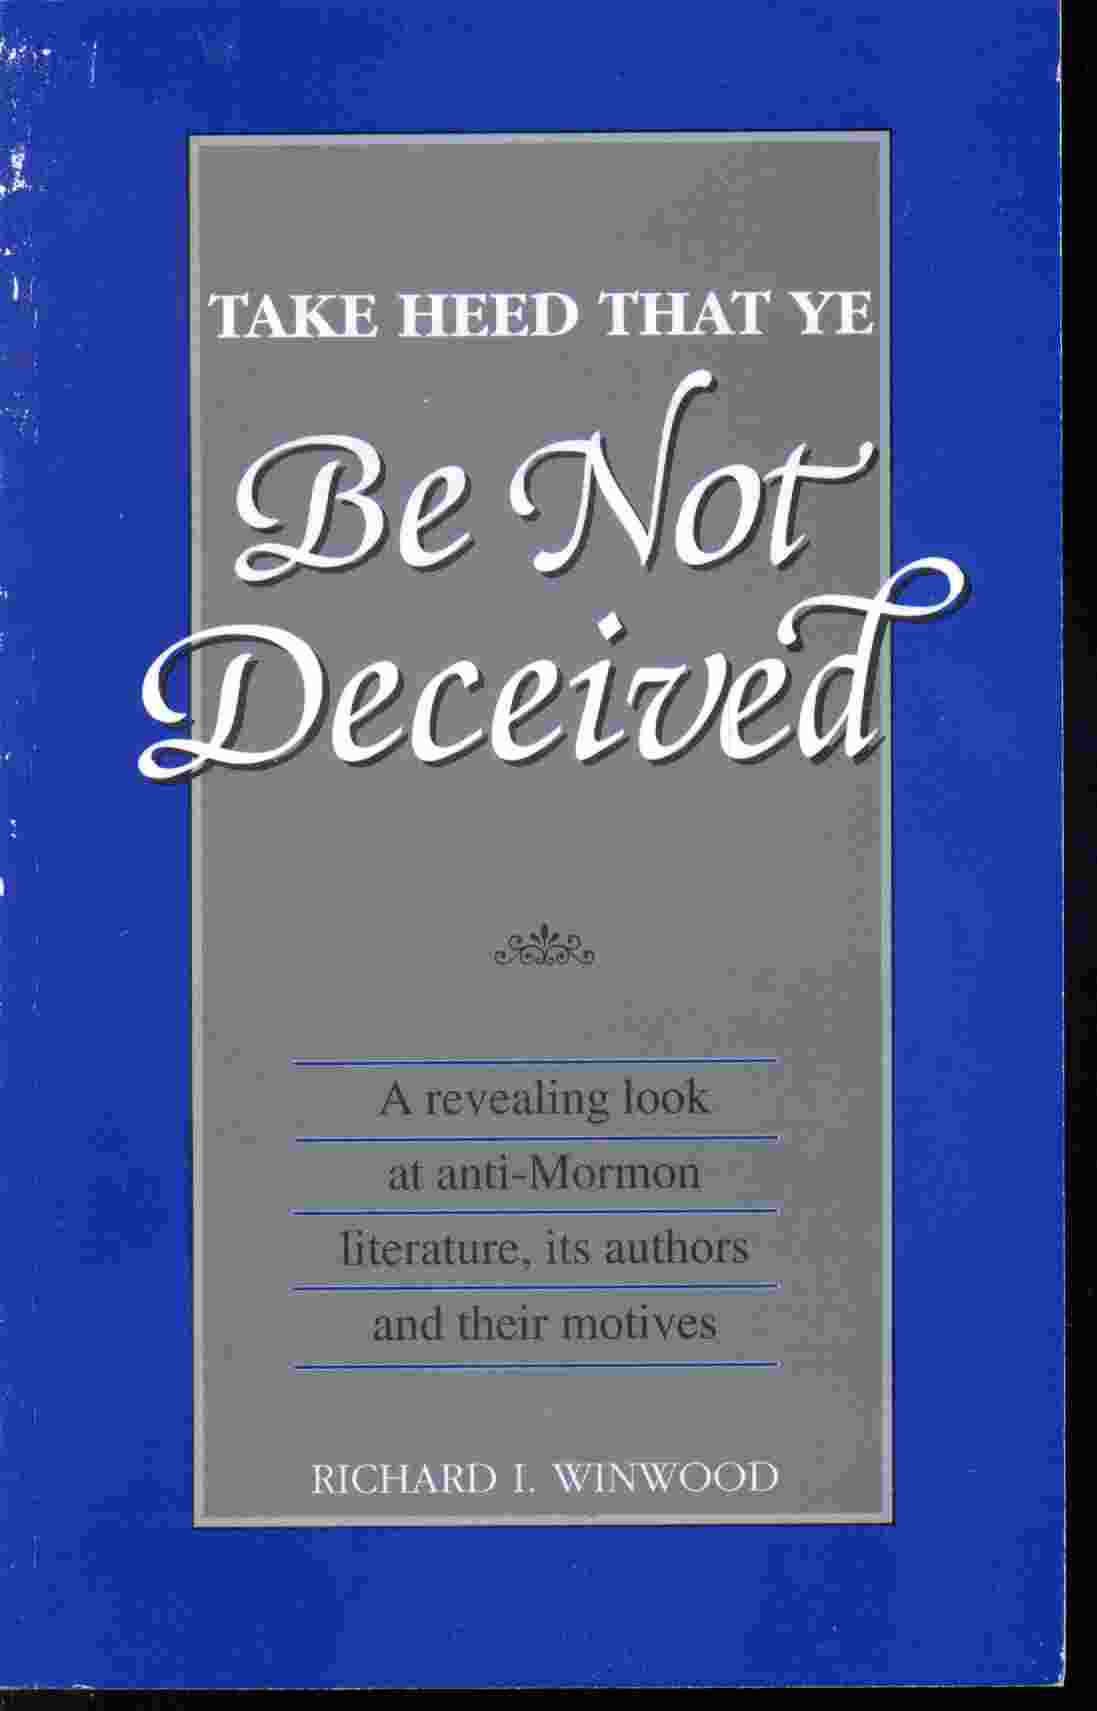 Image for TAKE HEED THAT YE BE NOT DECEIVED - A Revealing Look At Anti-Mormon Literature, its Authors & Their Motives